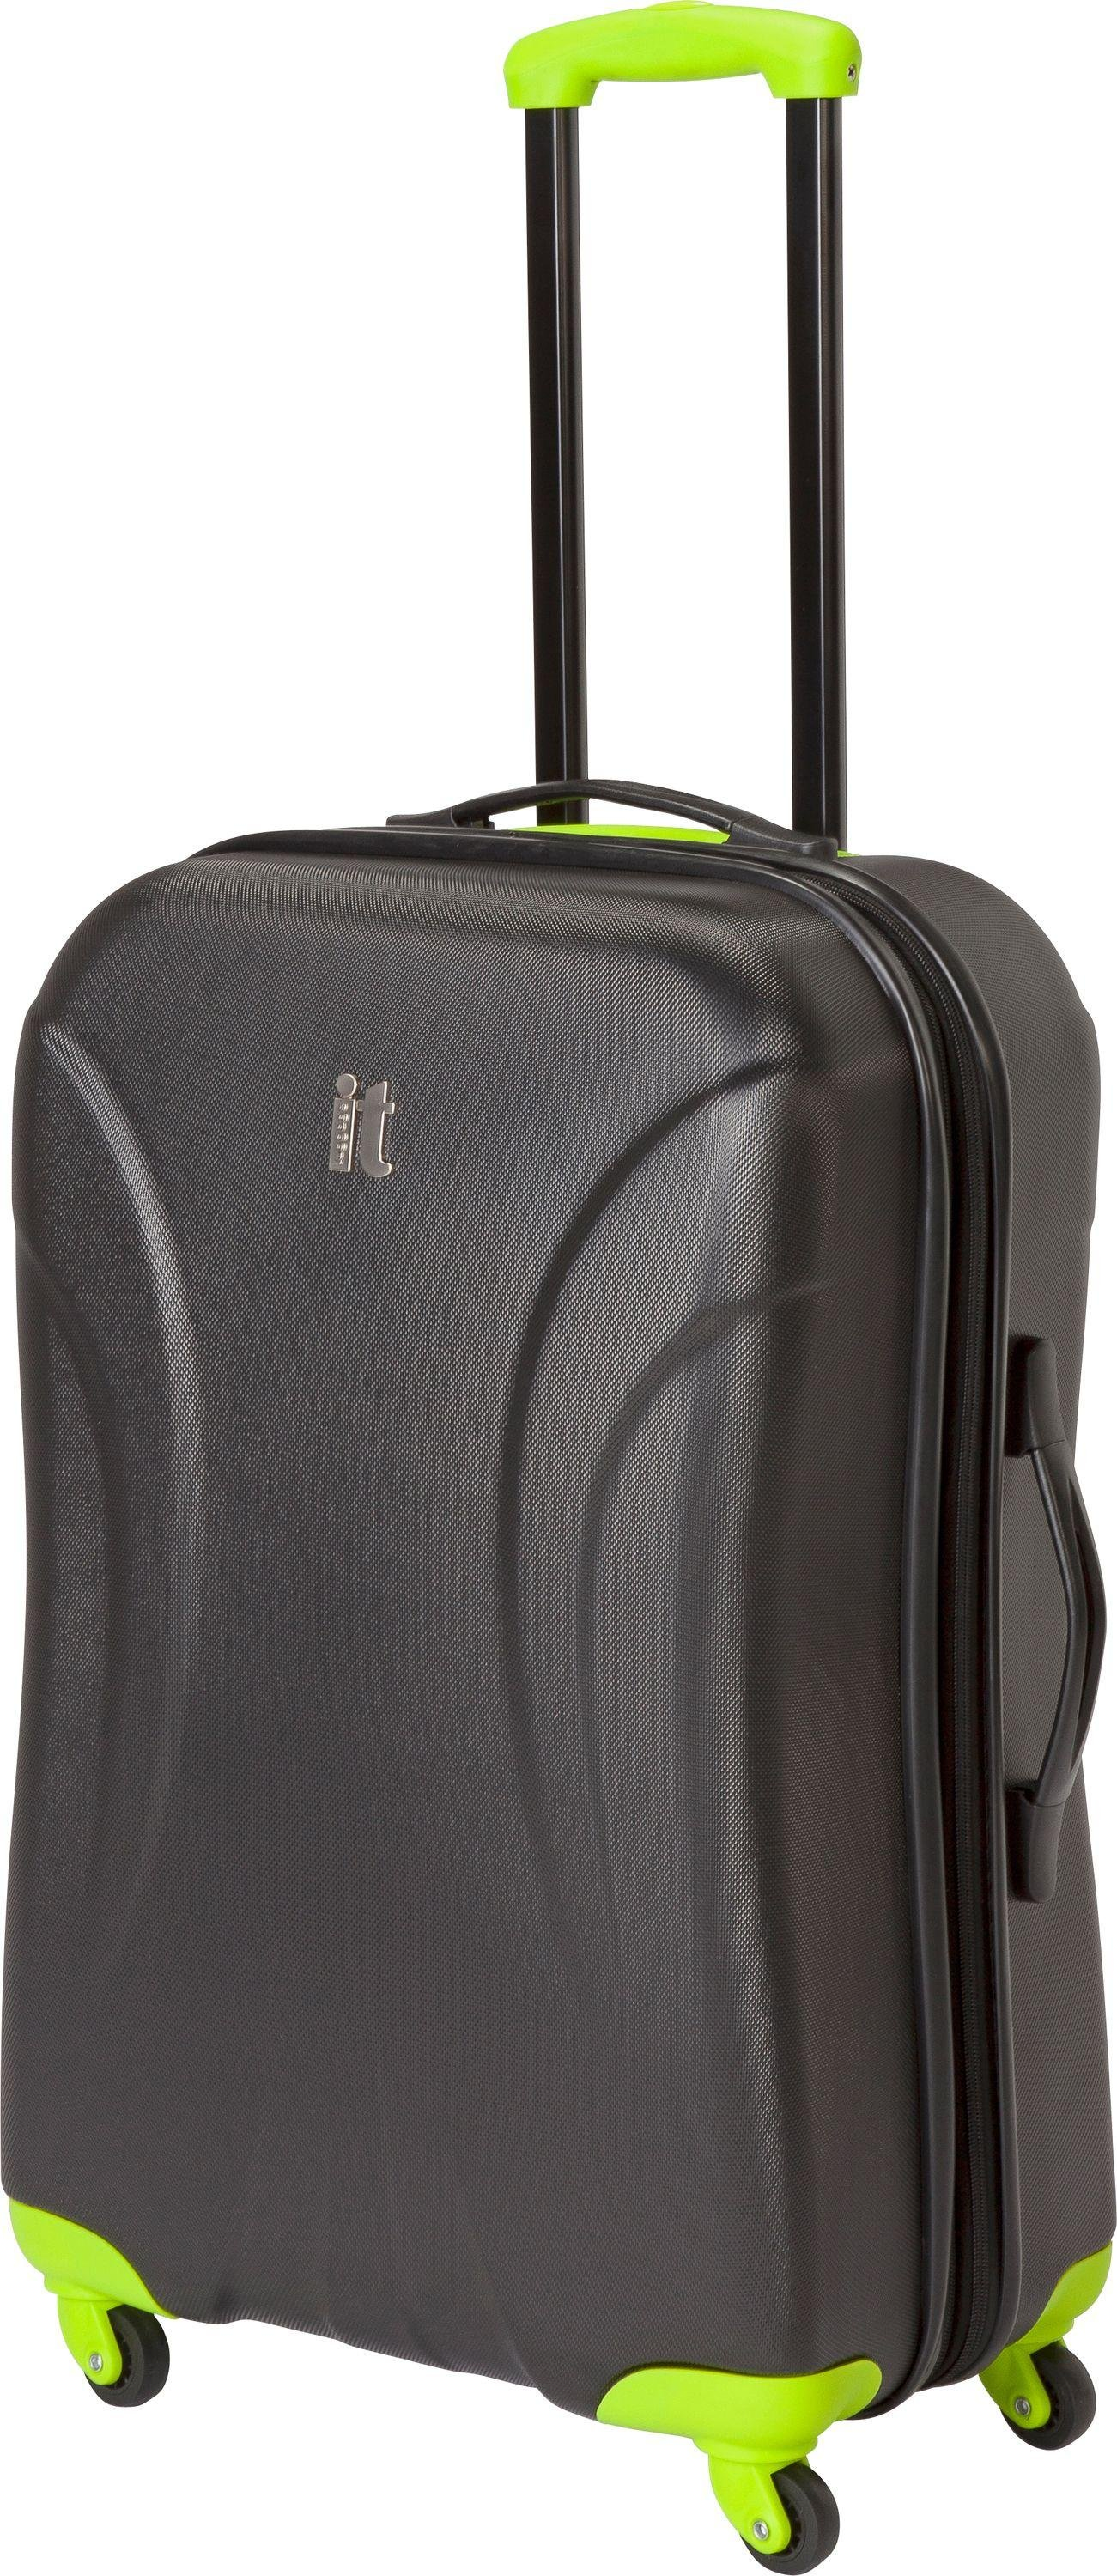 Buy IT Luggage Large Expandable 4 Wheel Hard Suitcase - Black at ...